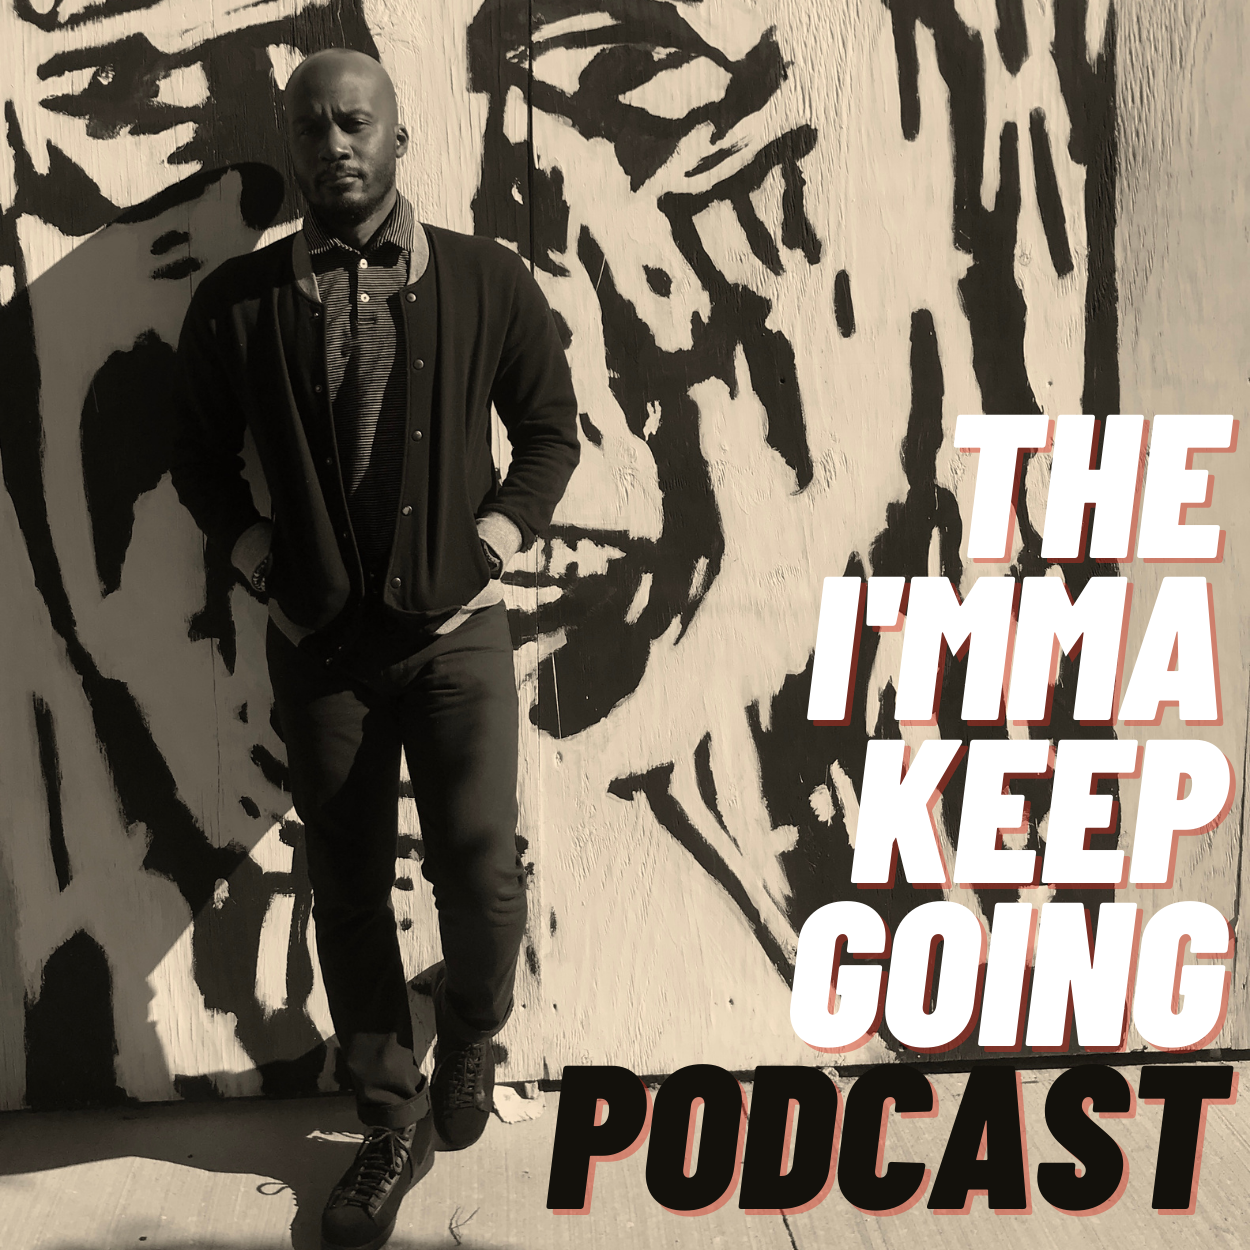 The I'mma Keep Going Podcast